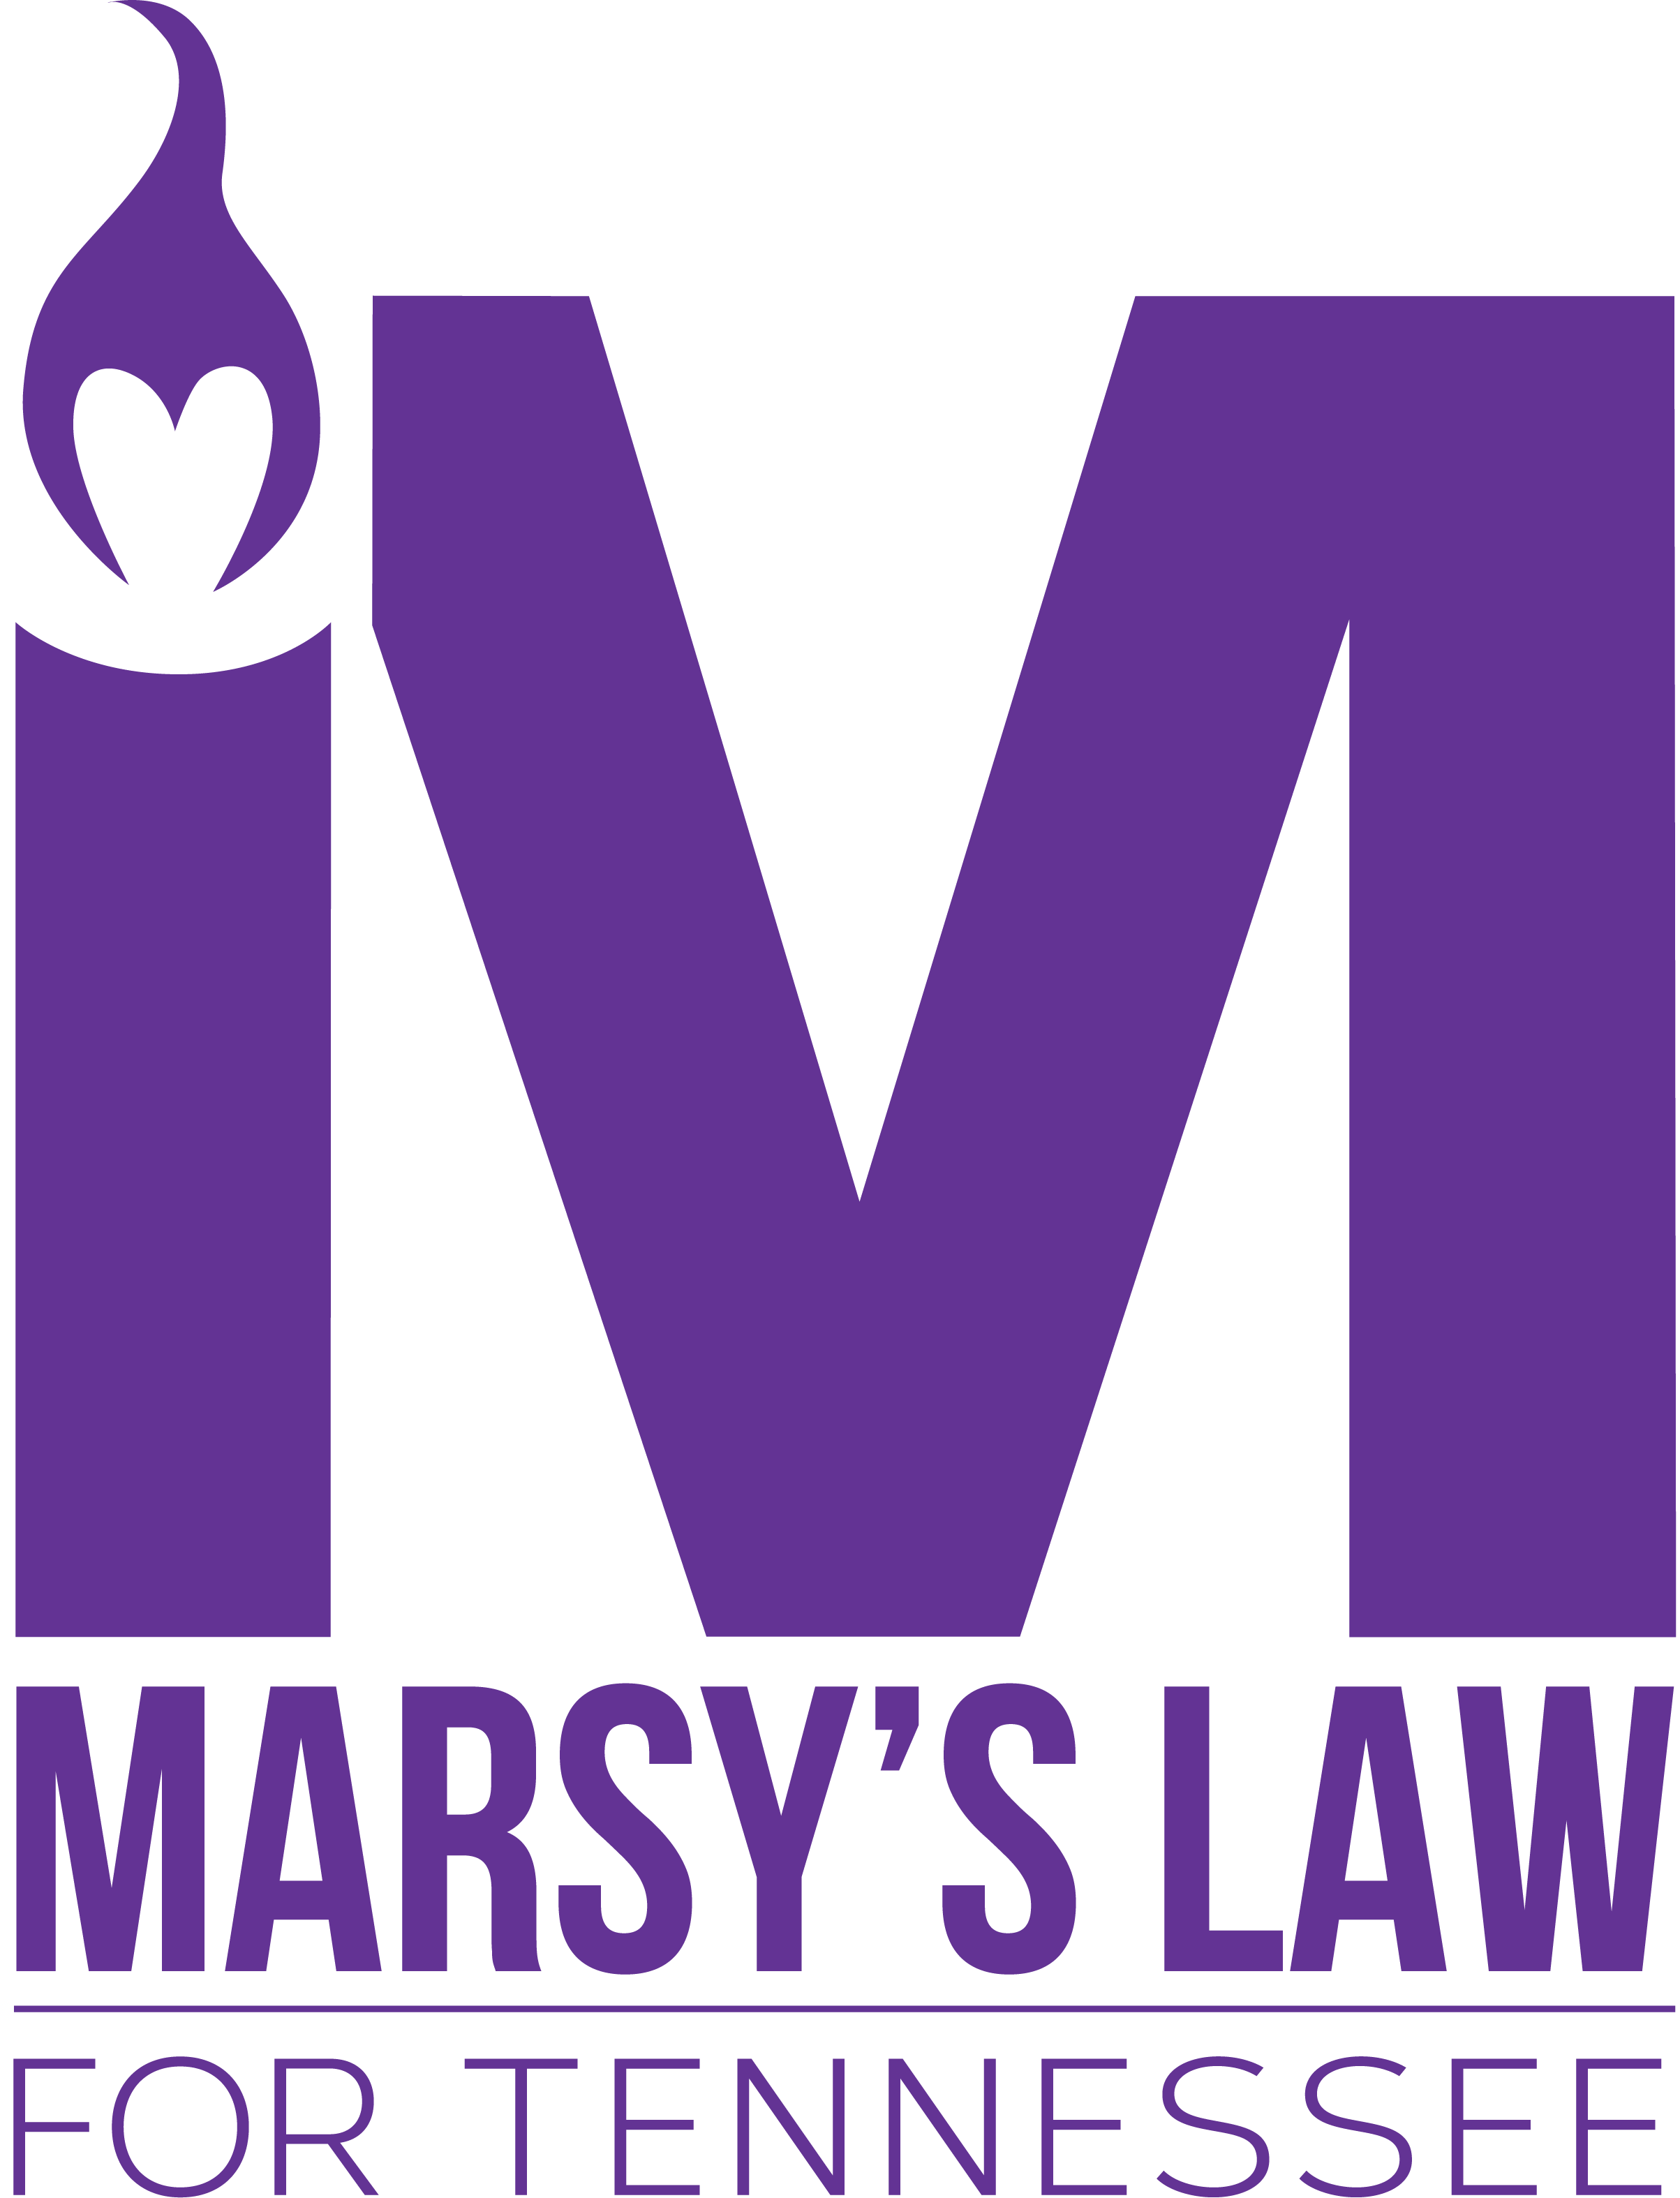 Marsy's Law for Tennessee